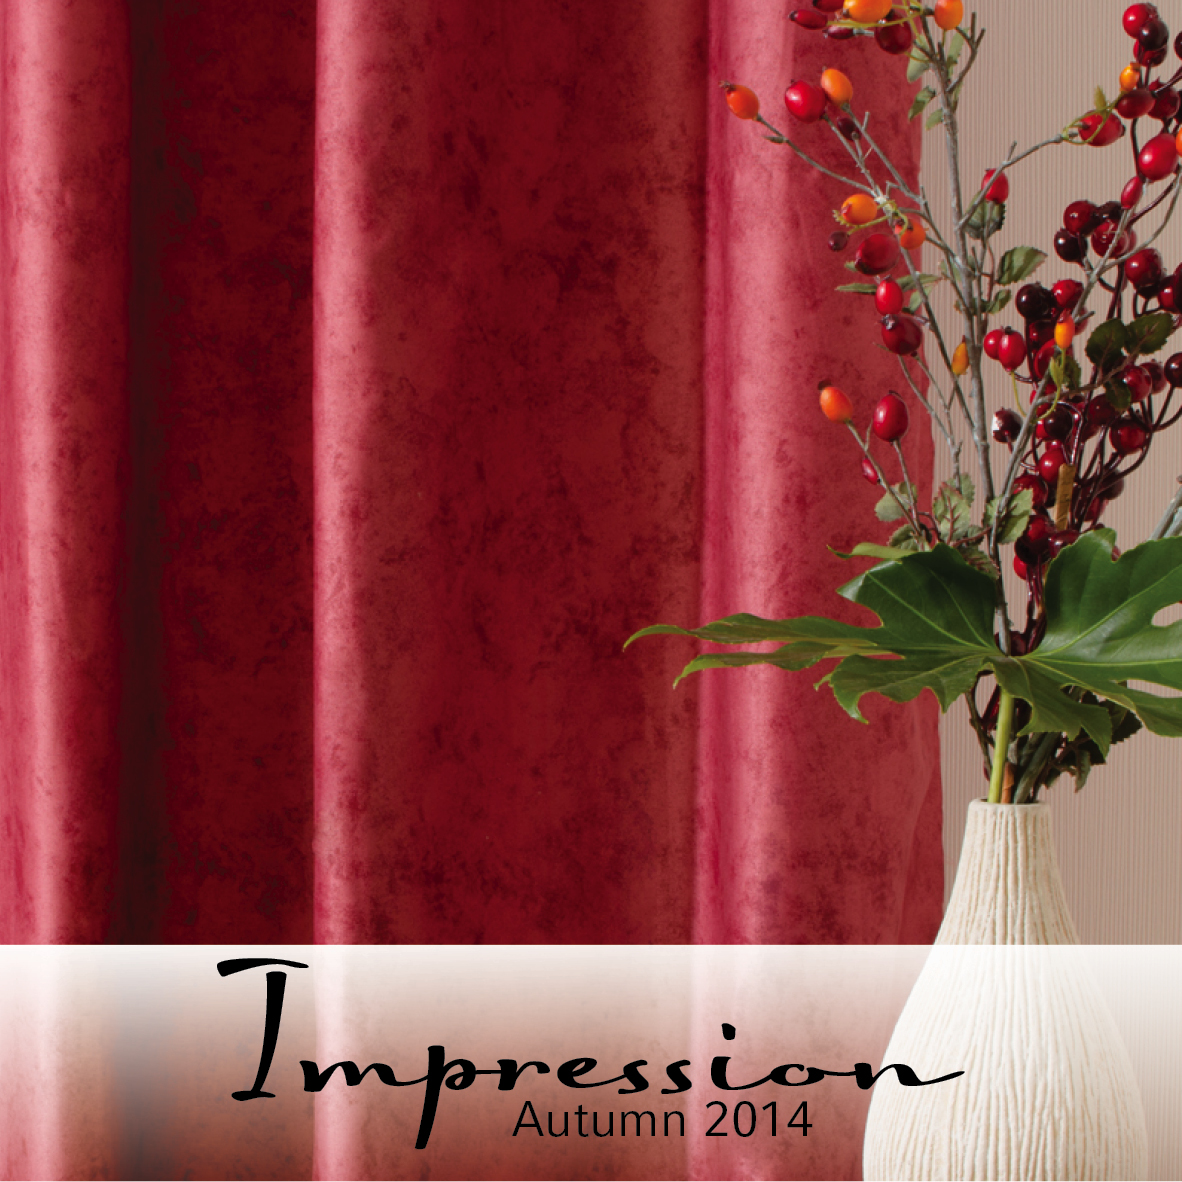 Indes collection autumn 2014: Impression